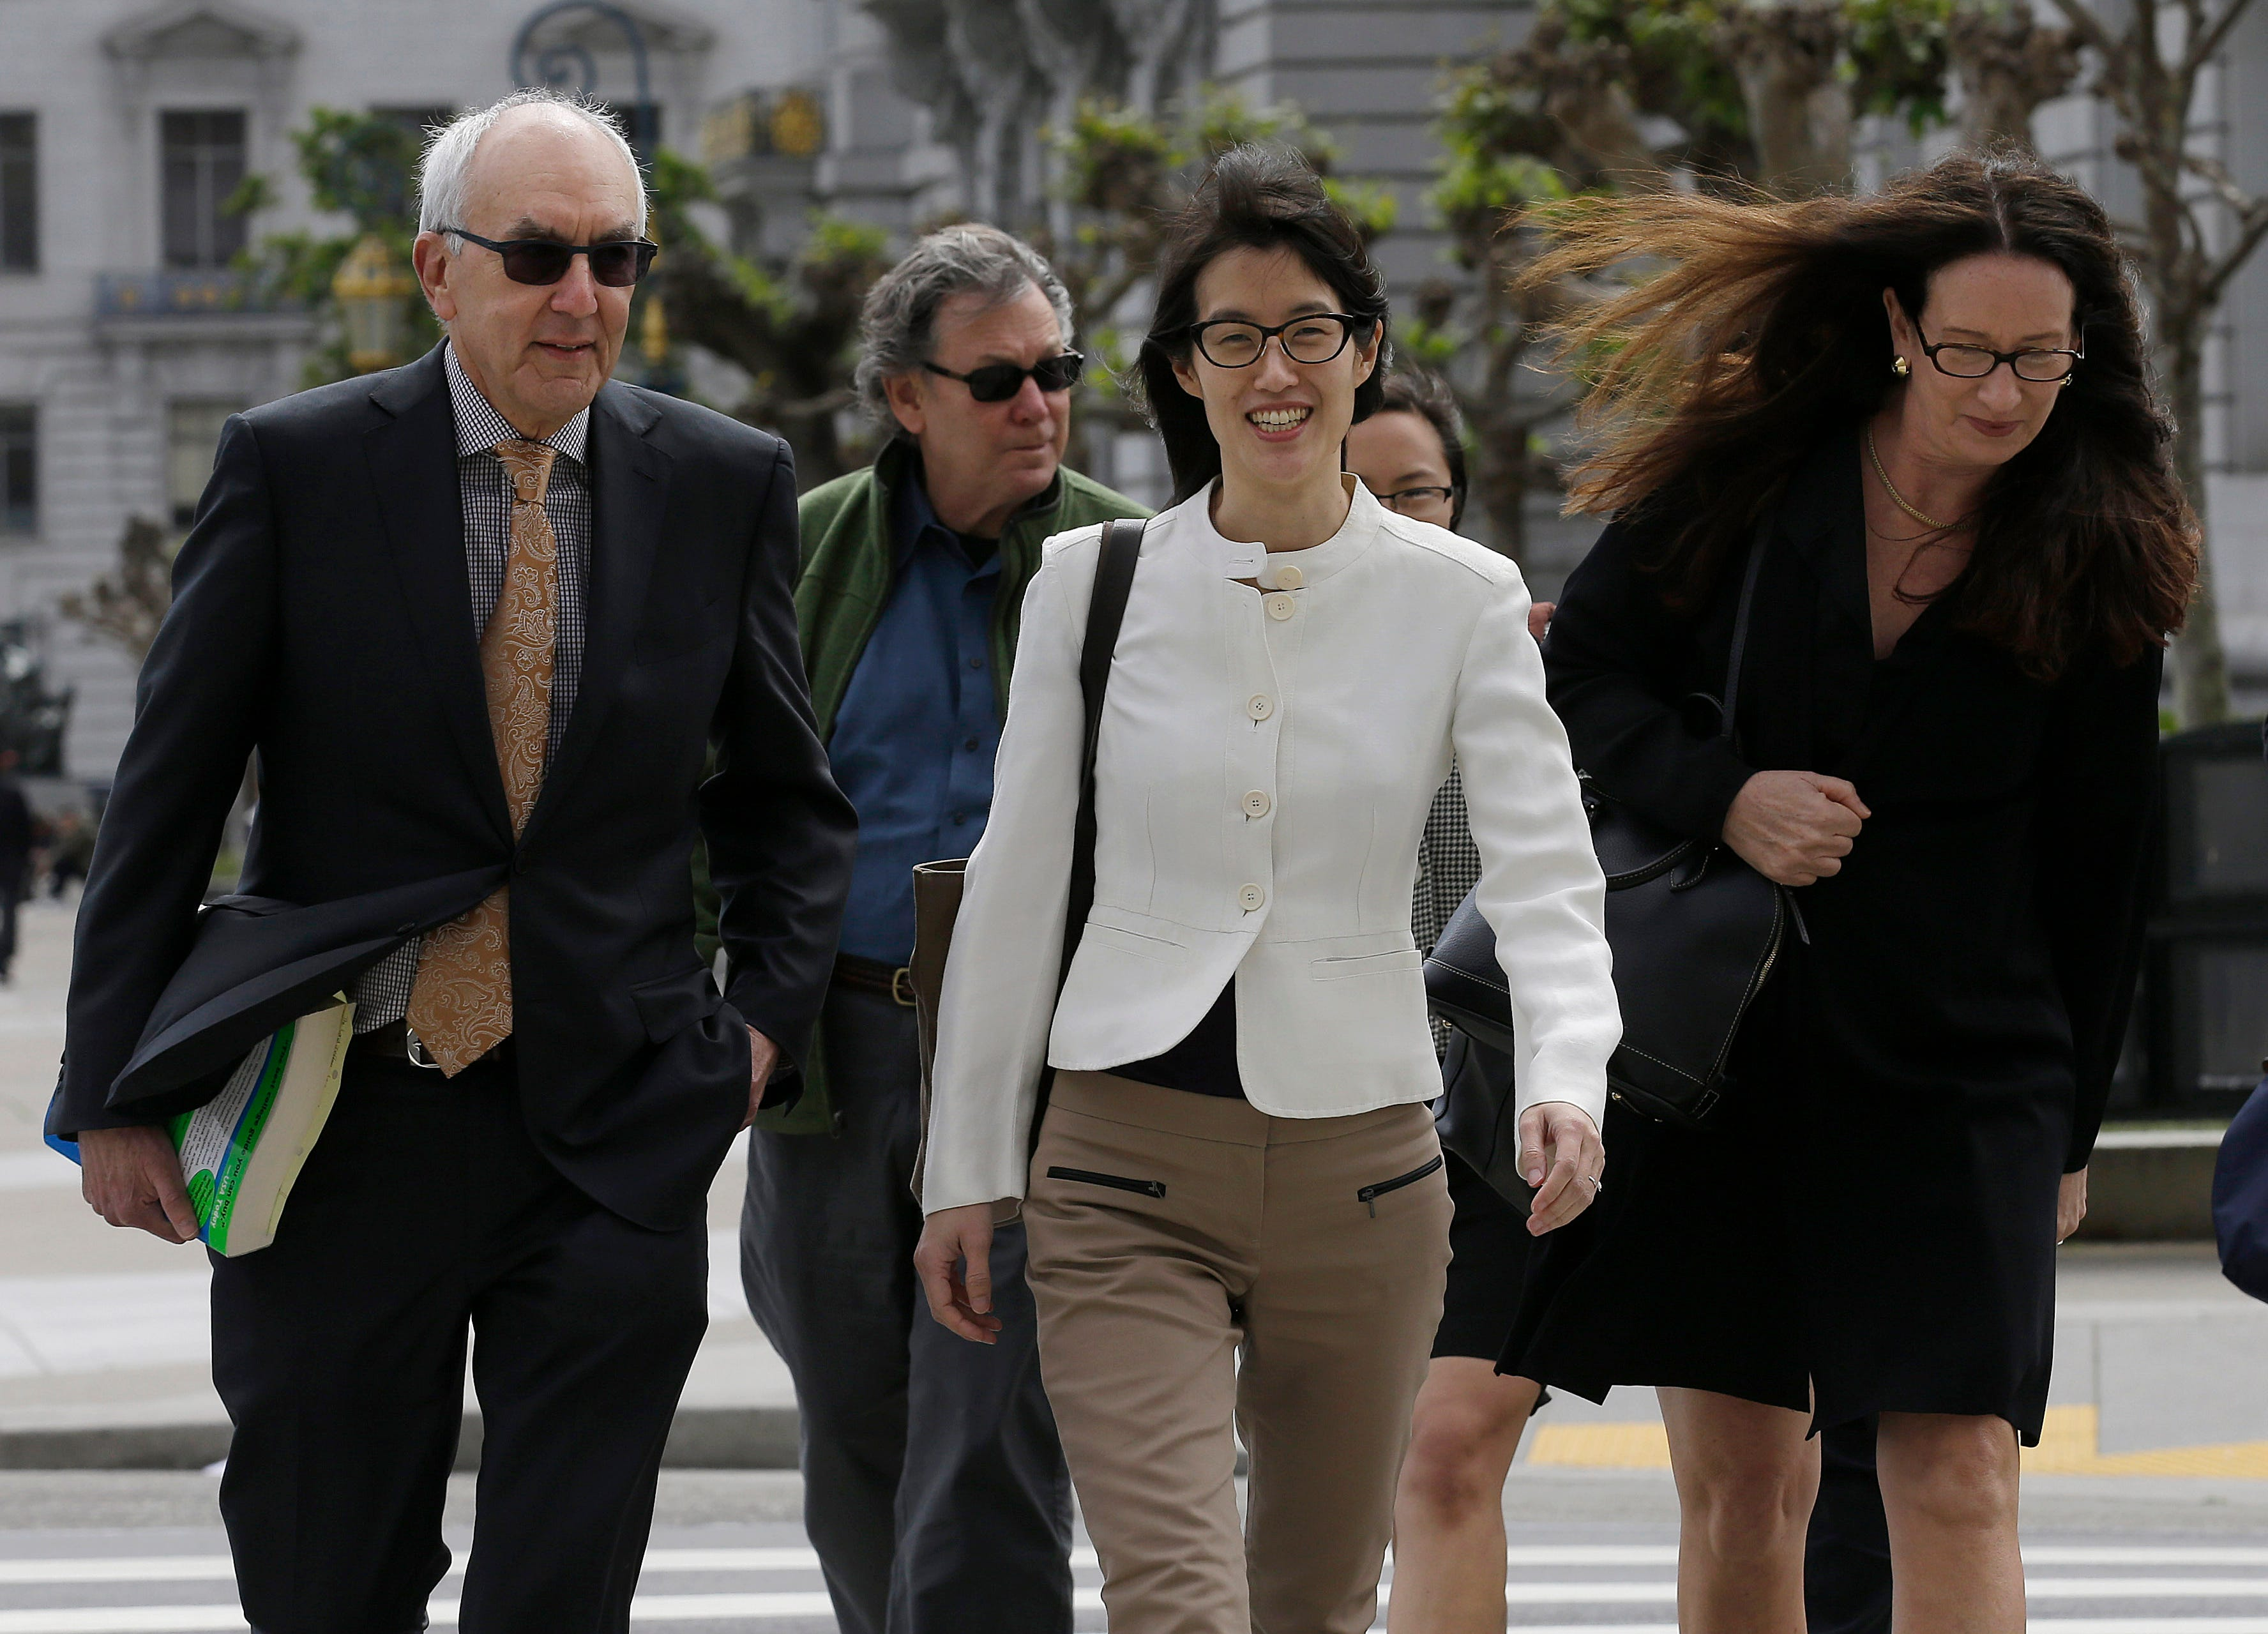 Ellen Pao says it's time to 'shake out' people in tech who don't believe in inclusion